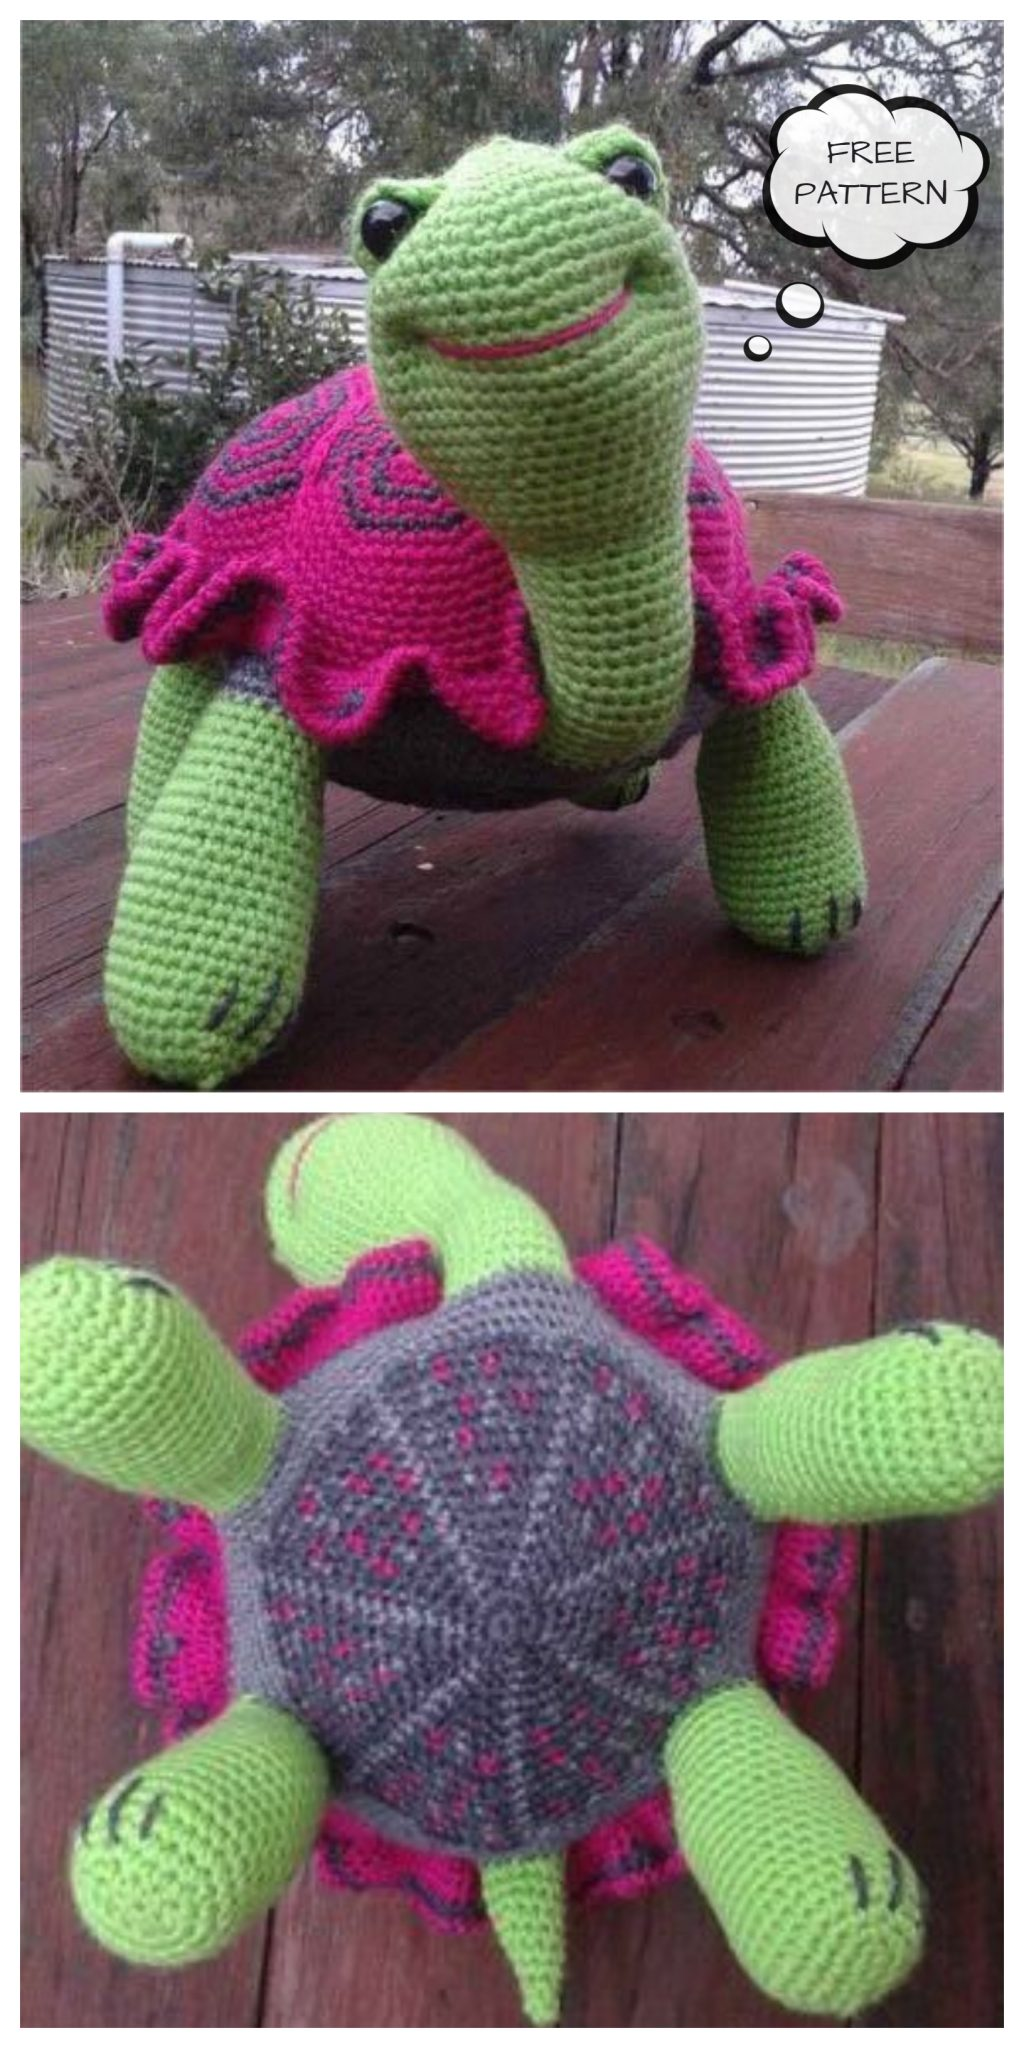 Crochet Toy Tortoise Amigurumi Free Patterns